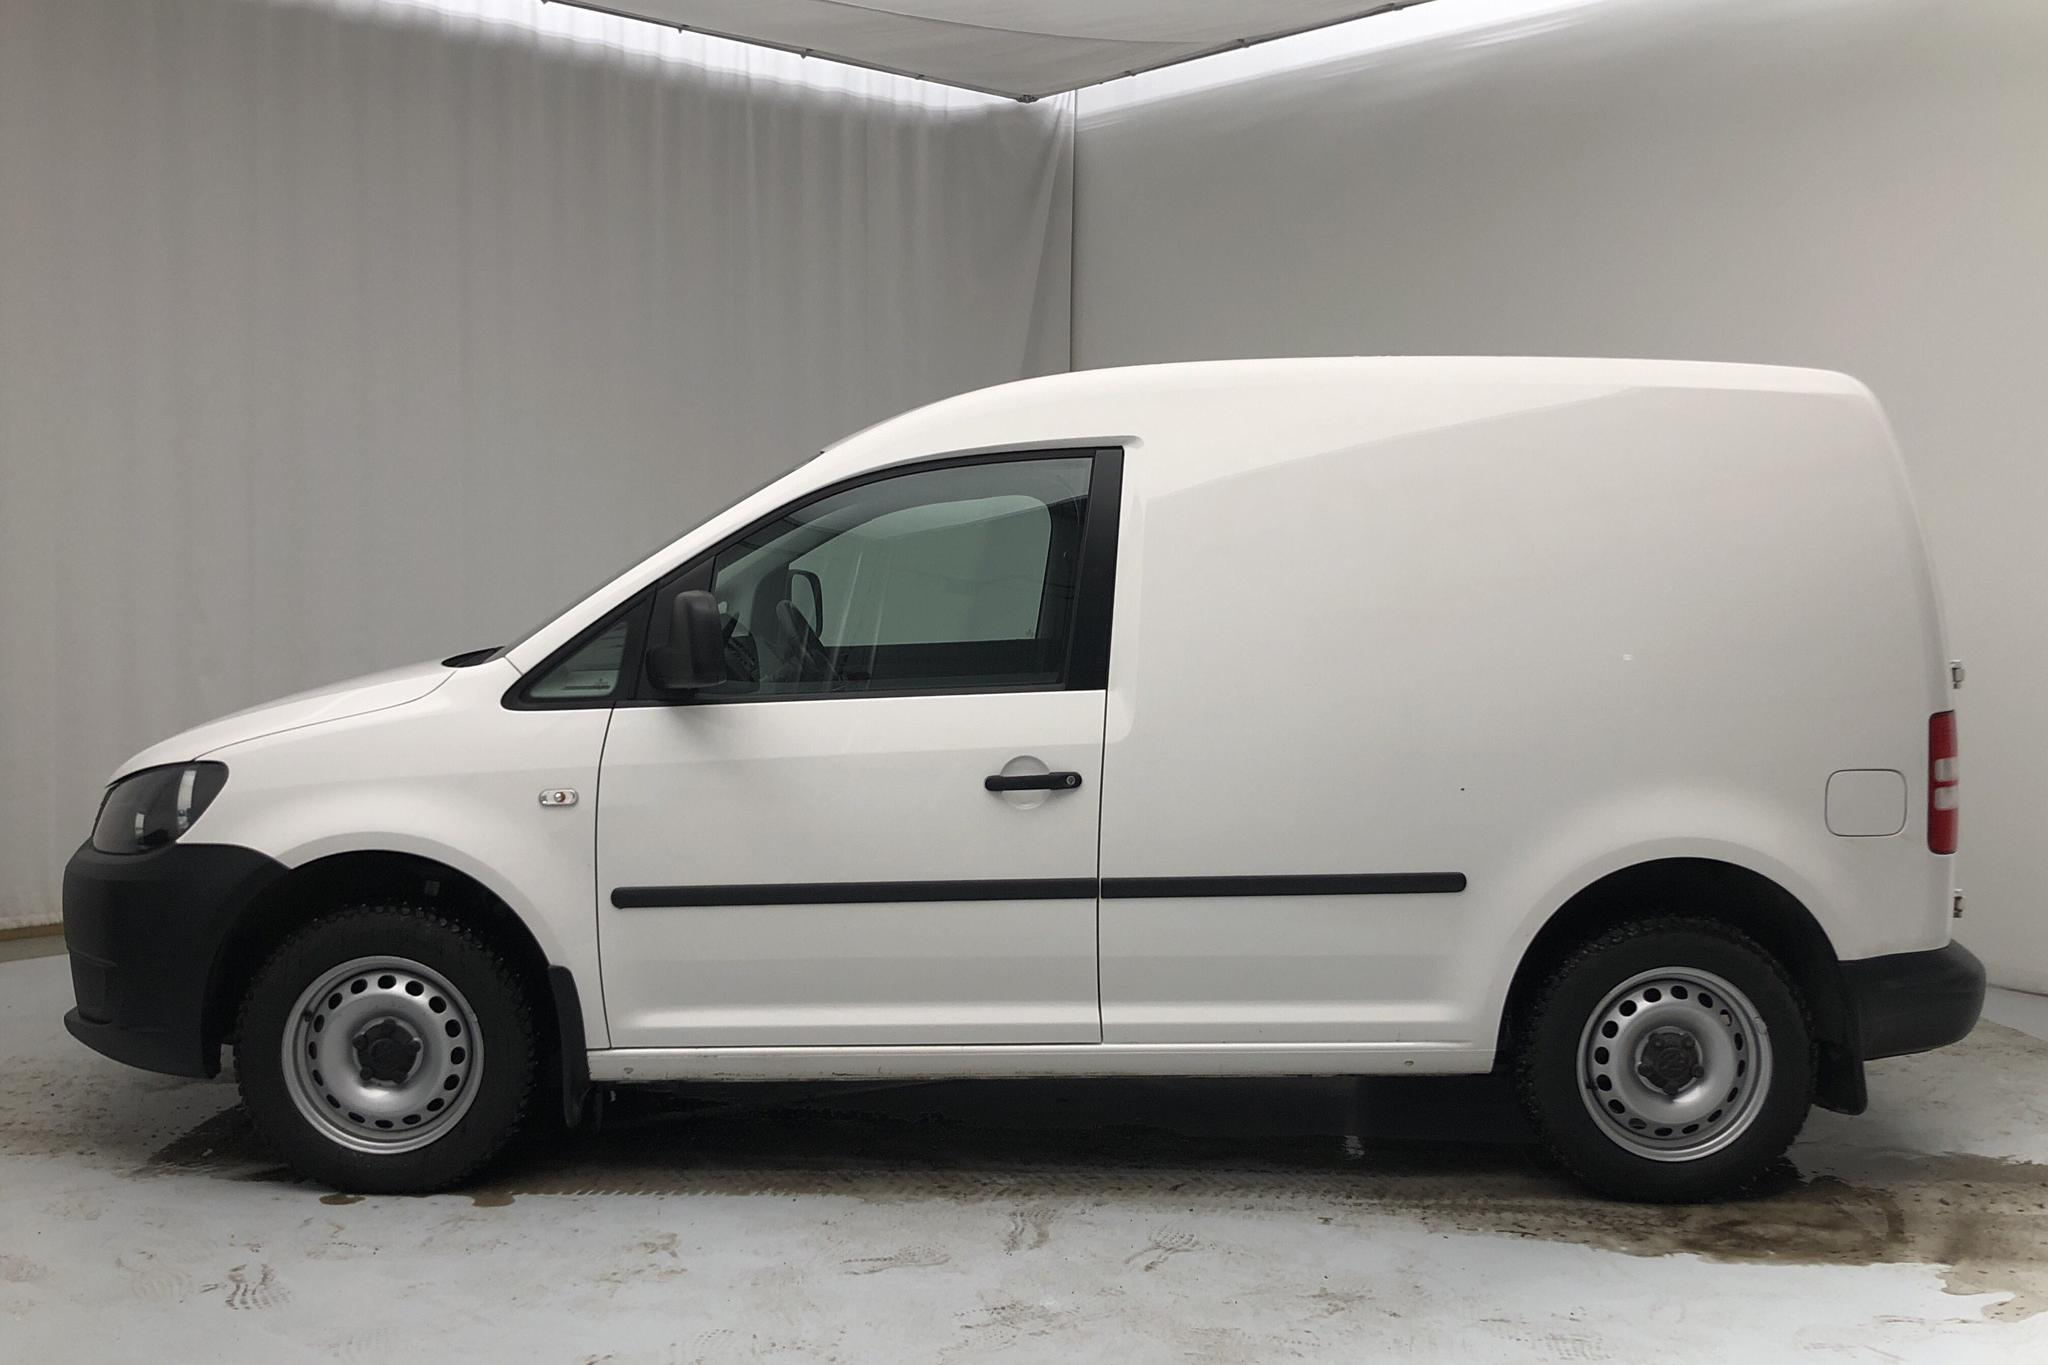 VW Caddy 1.6 TDI Skåp (102hk) - 73 390 km - Manual - white - 2015